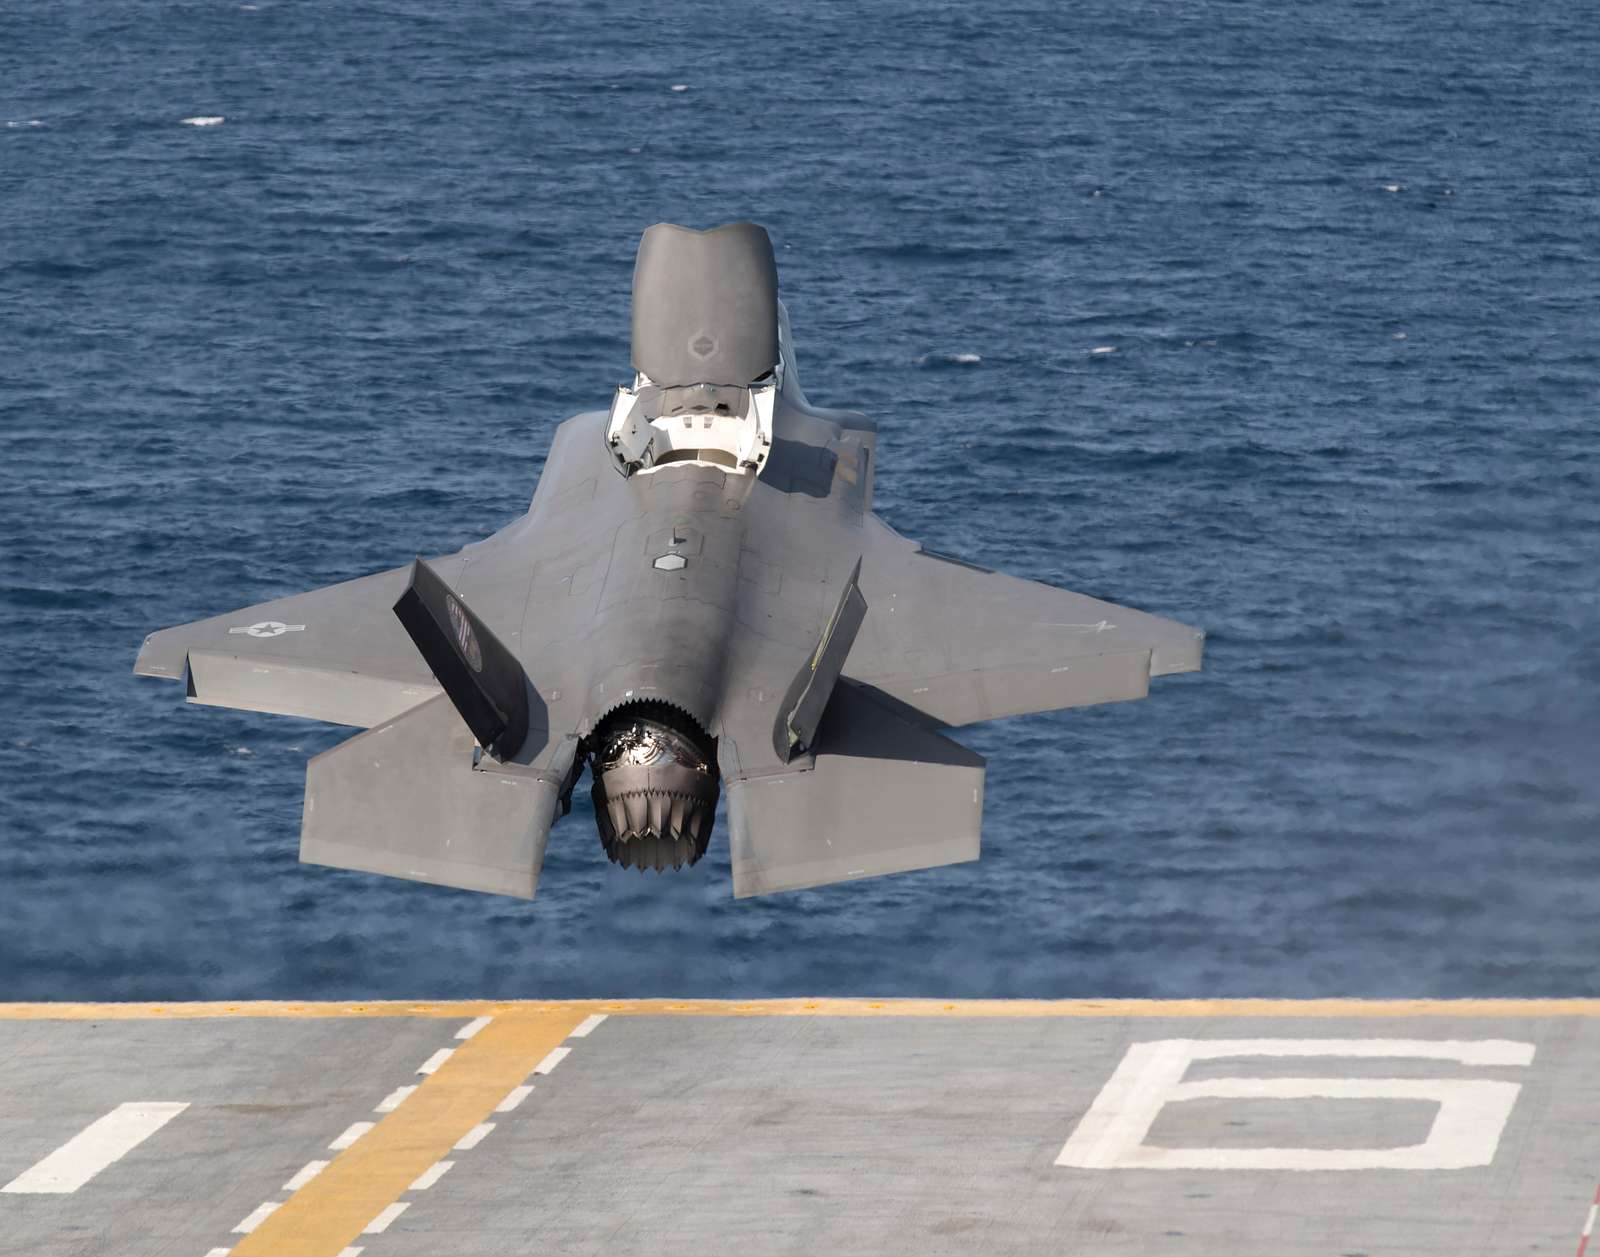 BF-1 Flt 608 (Sqd Ldr Andy Edgell/pilot) aboard USS America (LHA-6) on 29 October 2016 for STOVL DT-III. VMX-1 and VMFA-211 F-35Bs for OT testing aboard USS America (LHA-6).